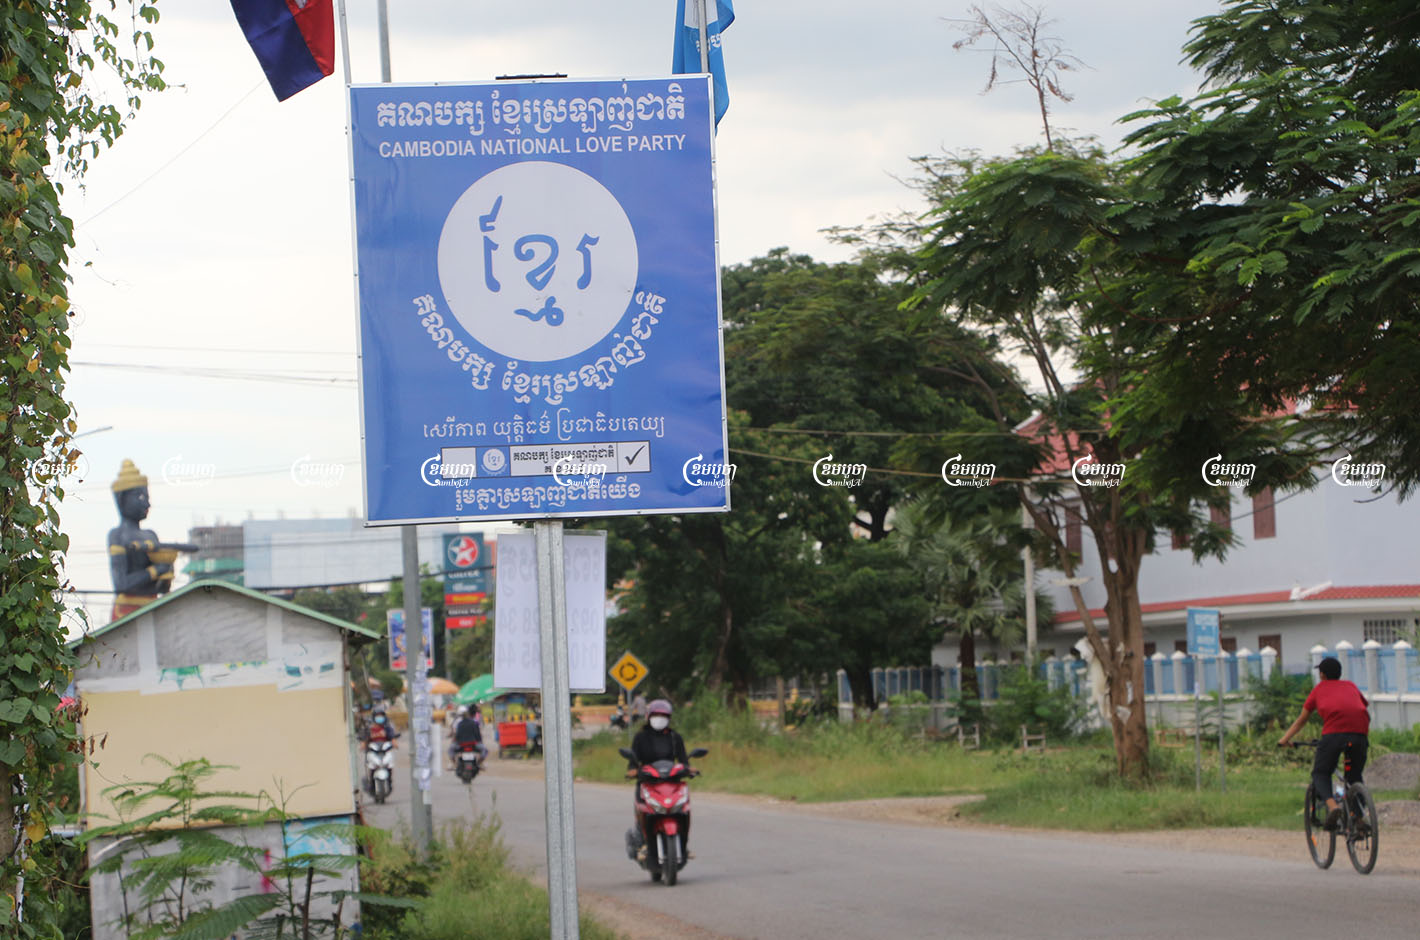 Drivers pass a sign for the newly formed Cambodia National Love Party in Battambang city. Photo taken on August 17, 2021. CamboJA/ Panha Chhorpoan